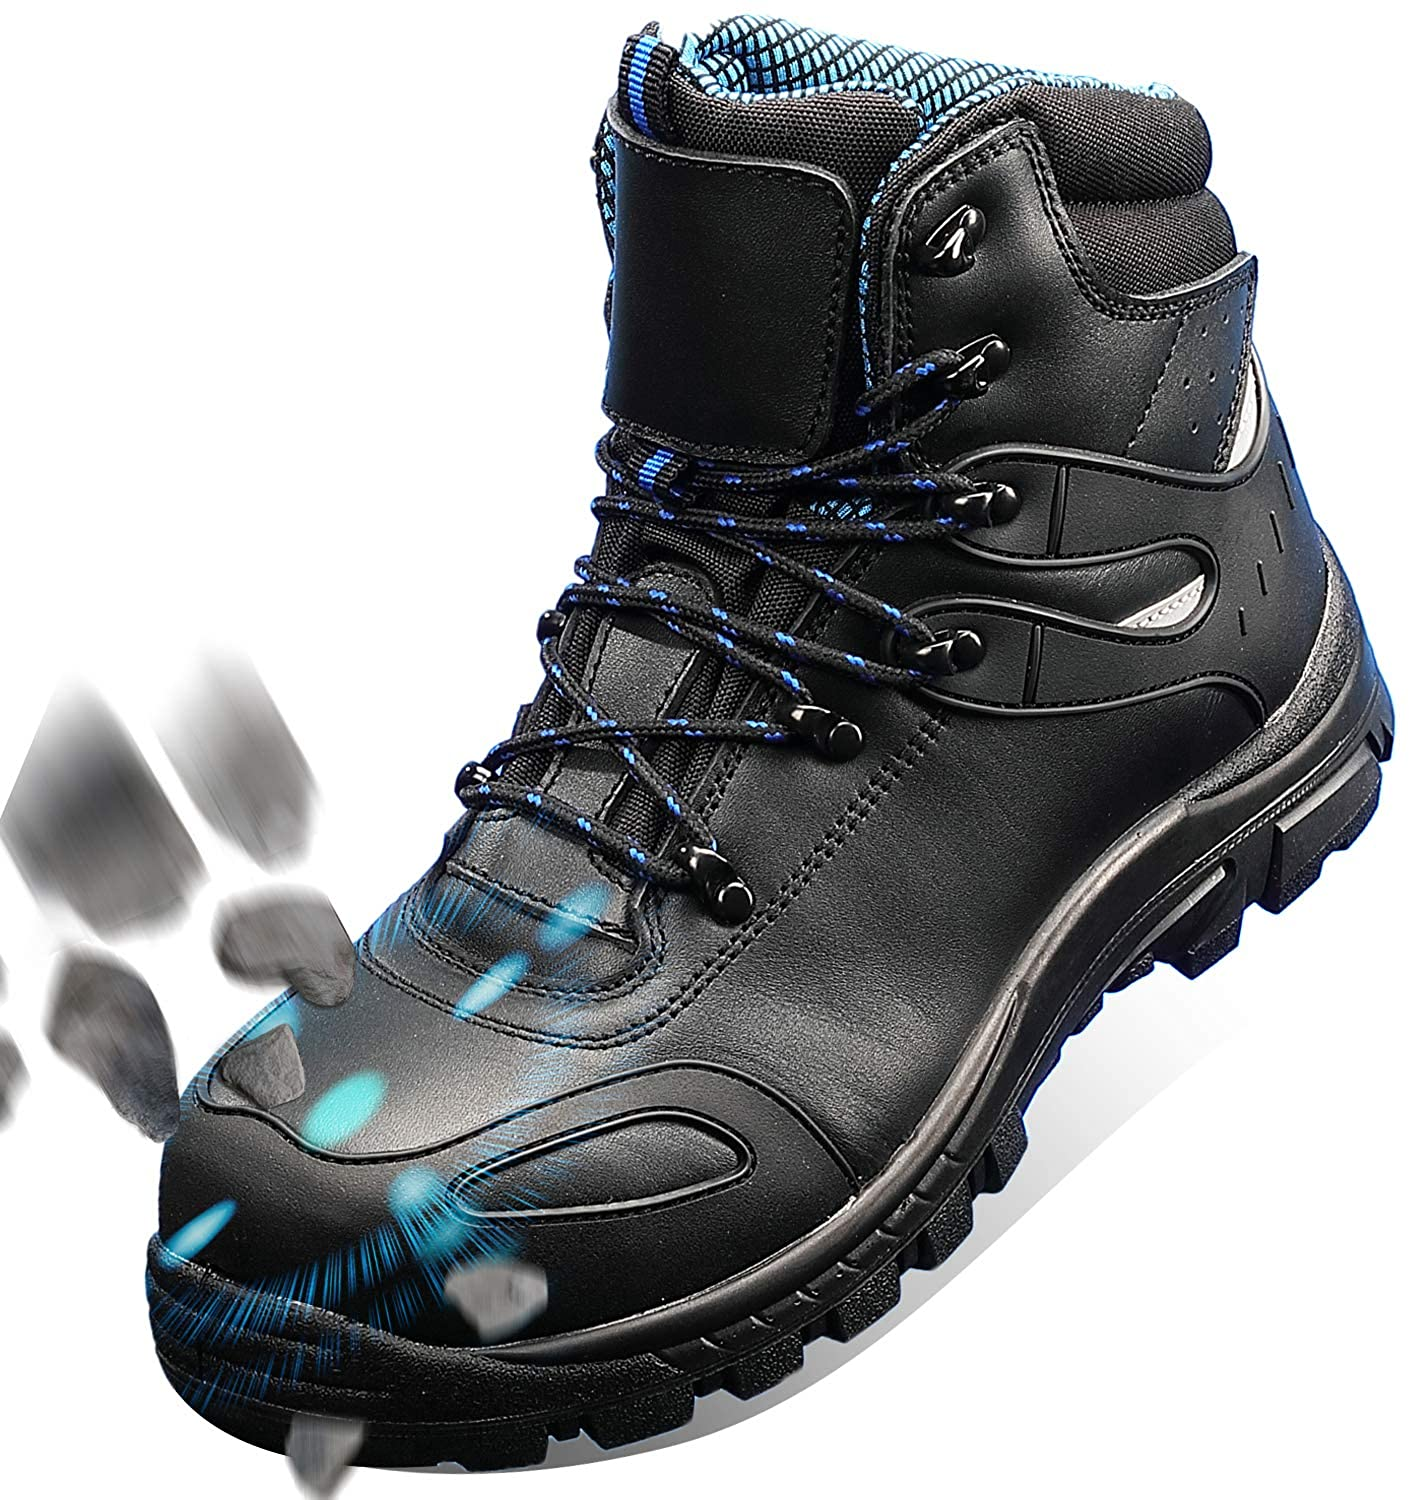 Anti-Slip Anti-Puncture Anti-Static Working Shoes 10.5, Black Composite Toe Waterproof Leather Safety Shoes GLORYA Work Boots for Men